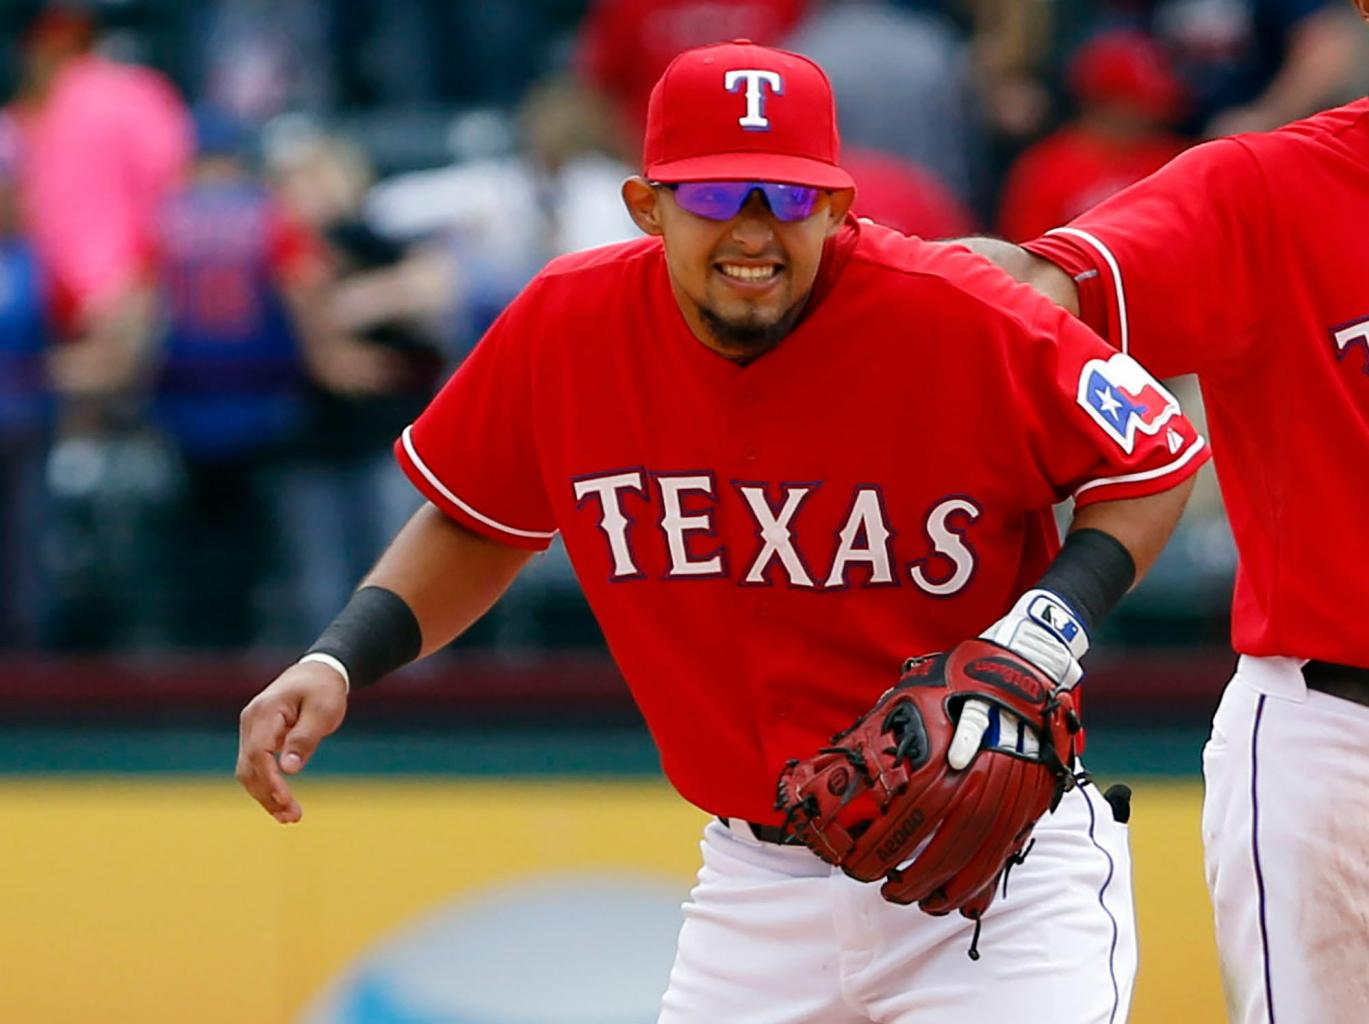 Rougned Odor 2015 Highlights - YouTube